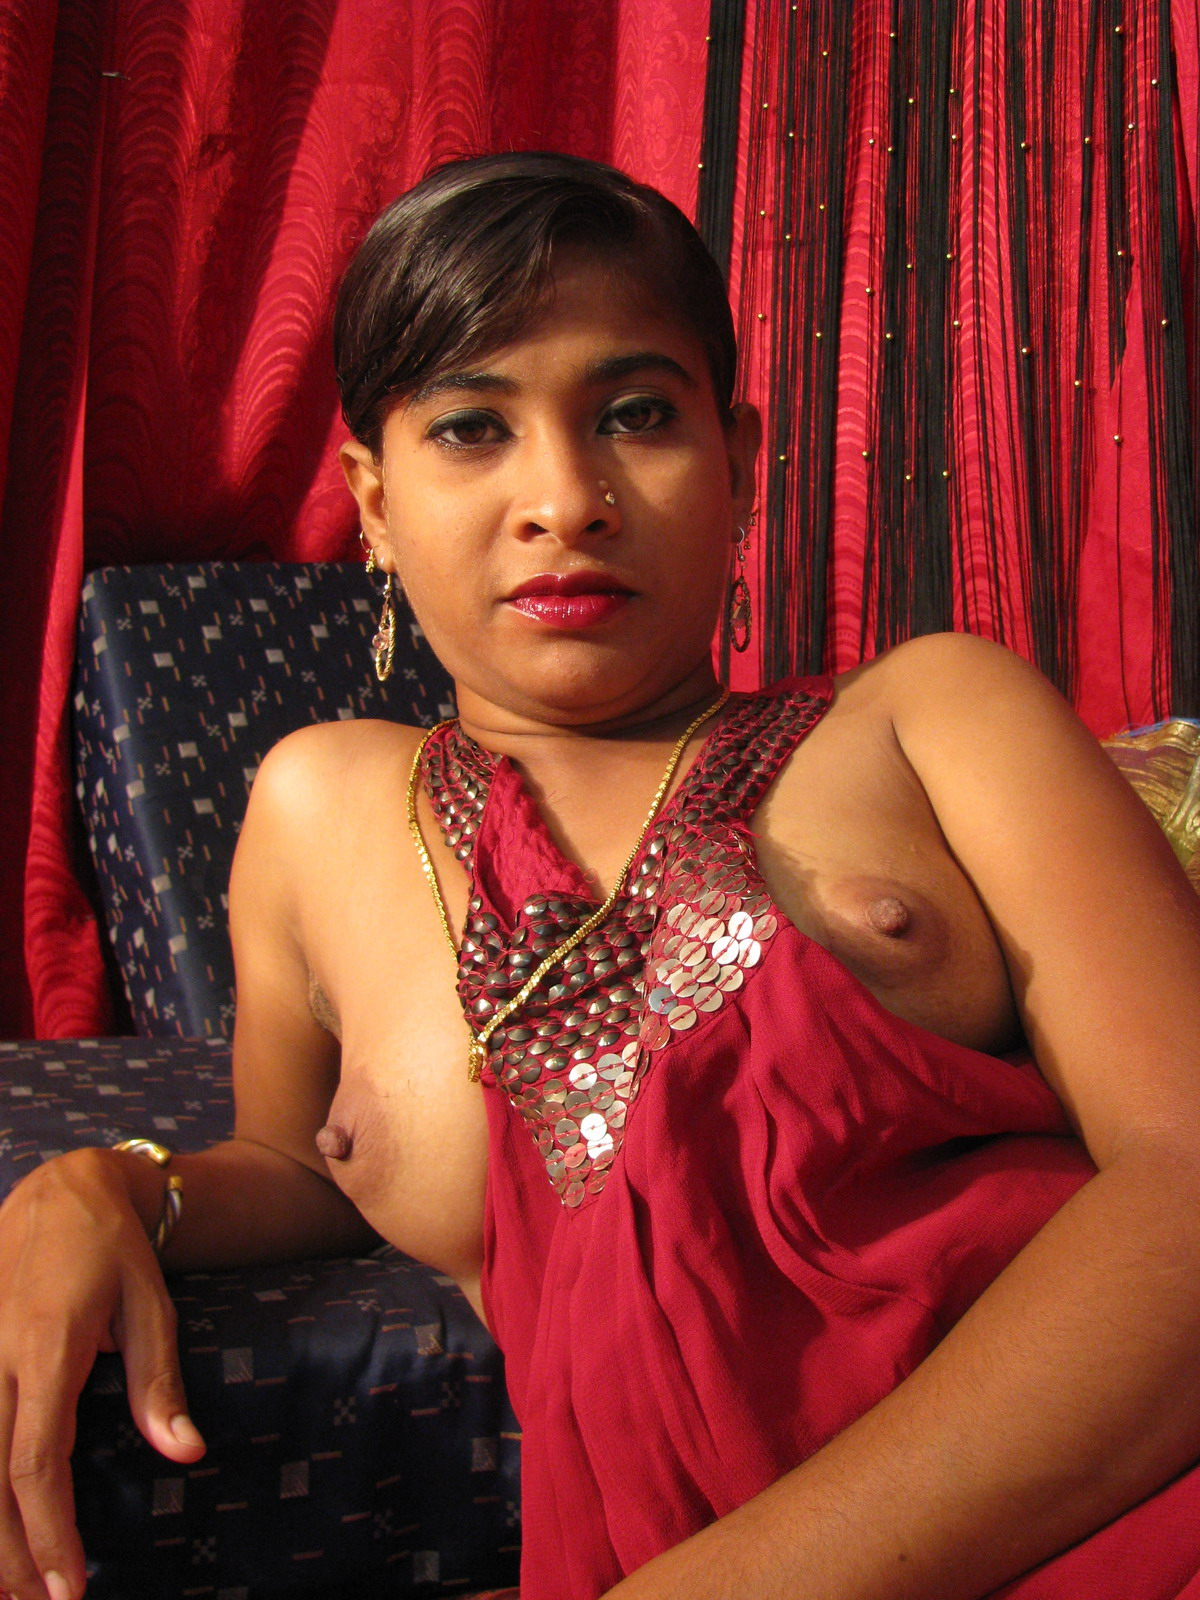 Indian Milf With Small Tits Spreading Pussy - Asian Porn -2974